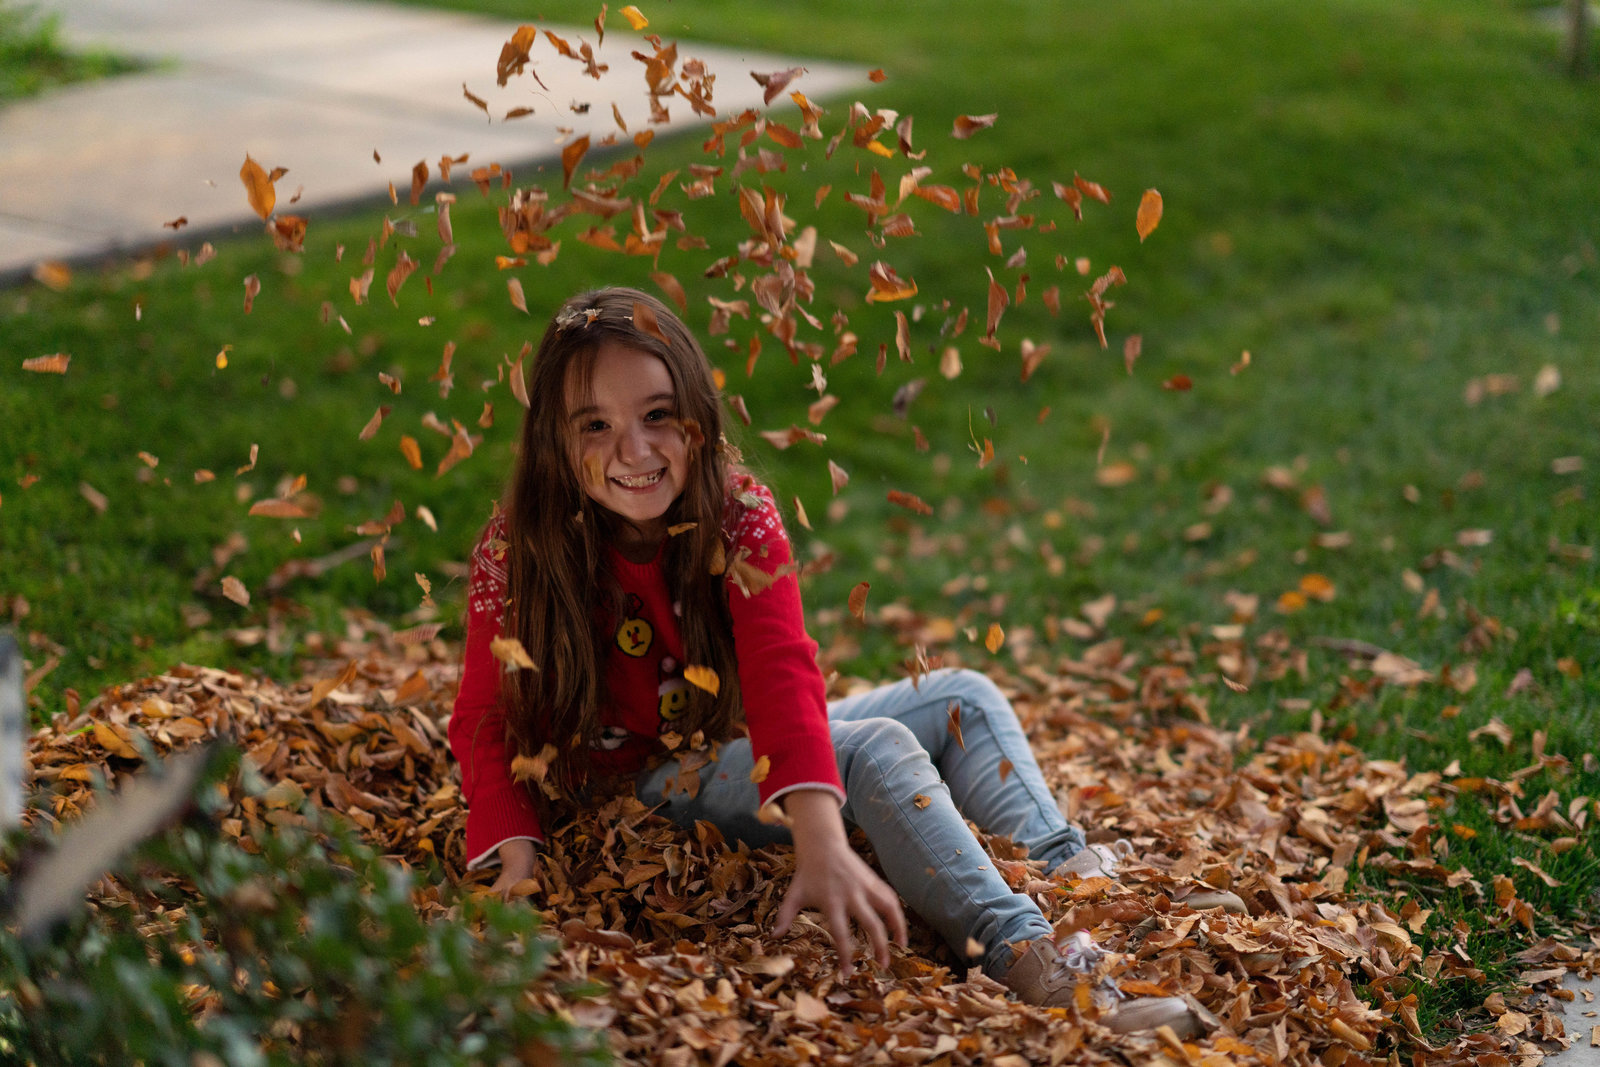 Lifestyle portrait of girl playing in leaves